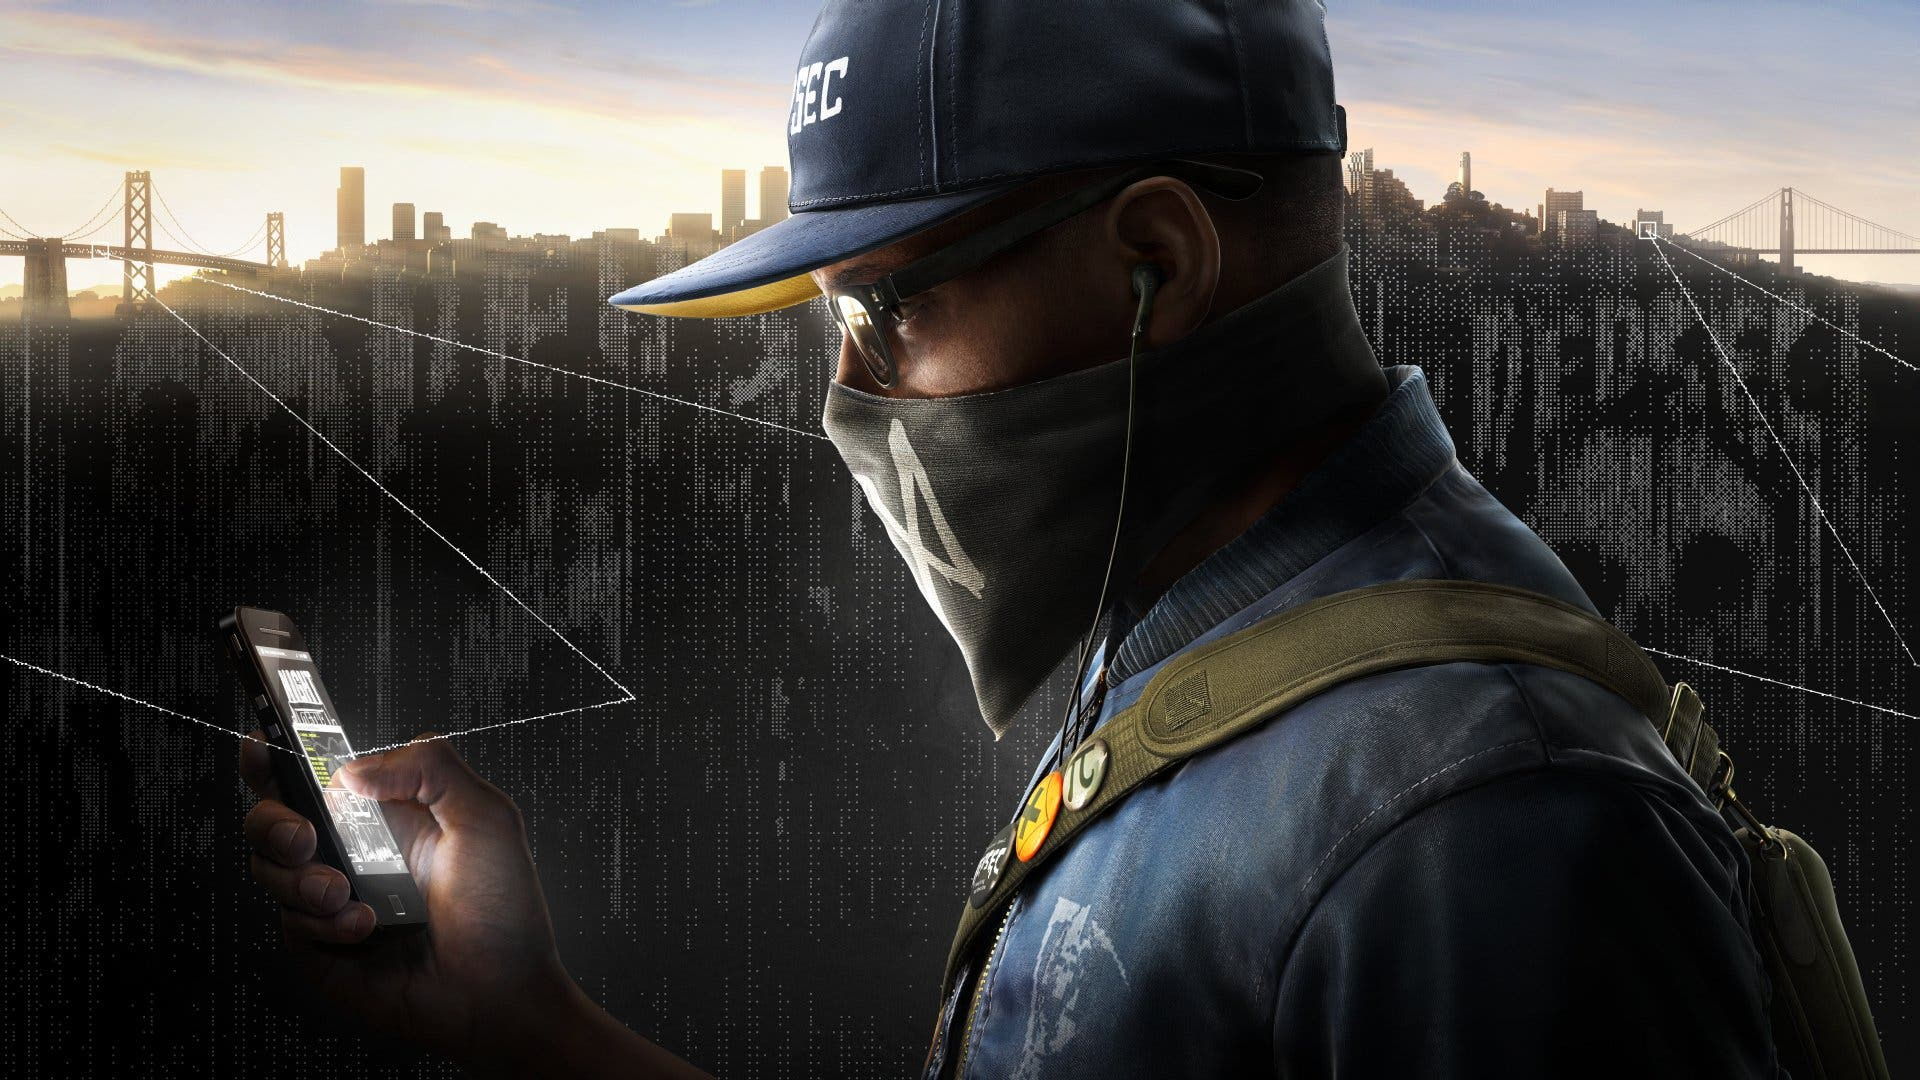 watch_dogs_2-3412910